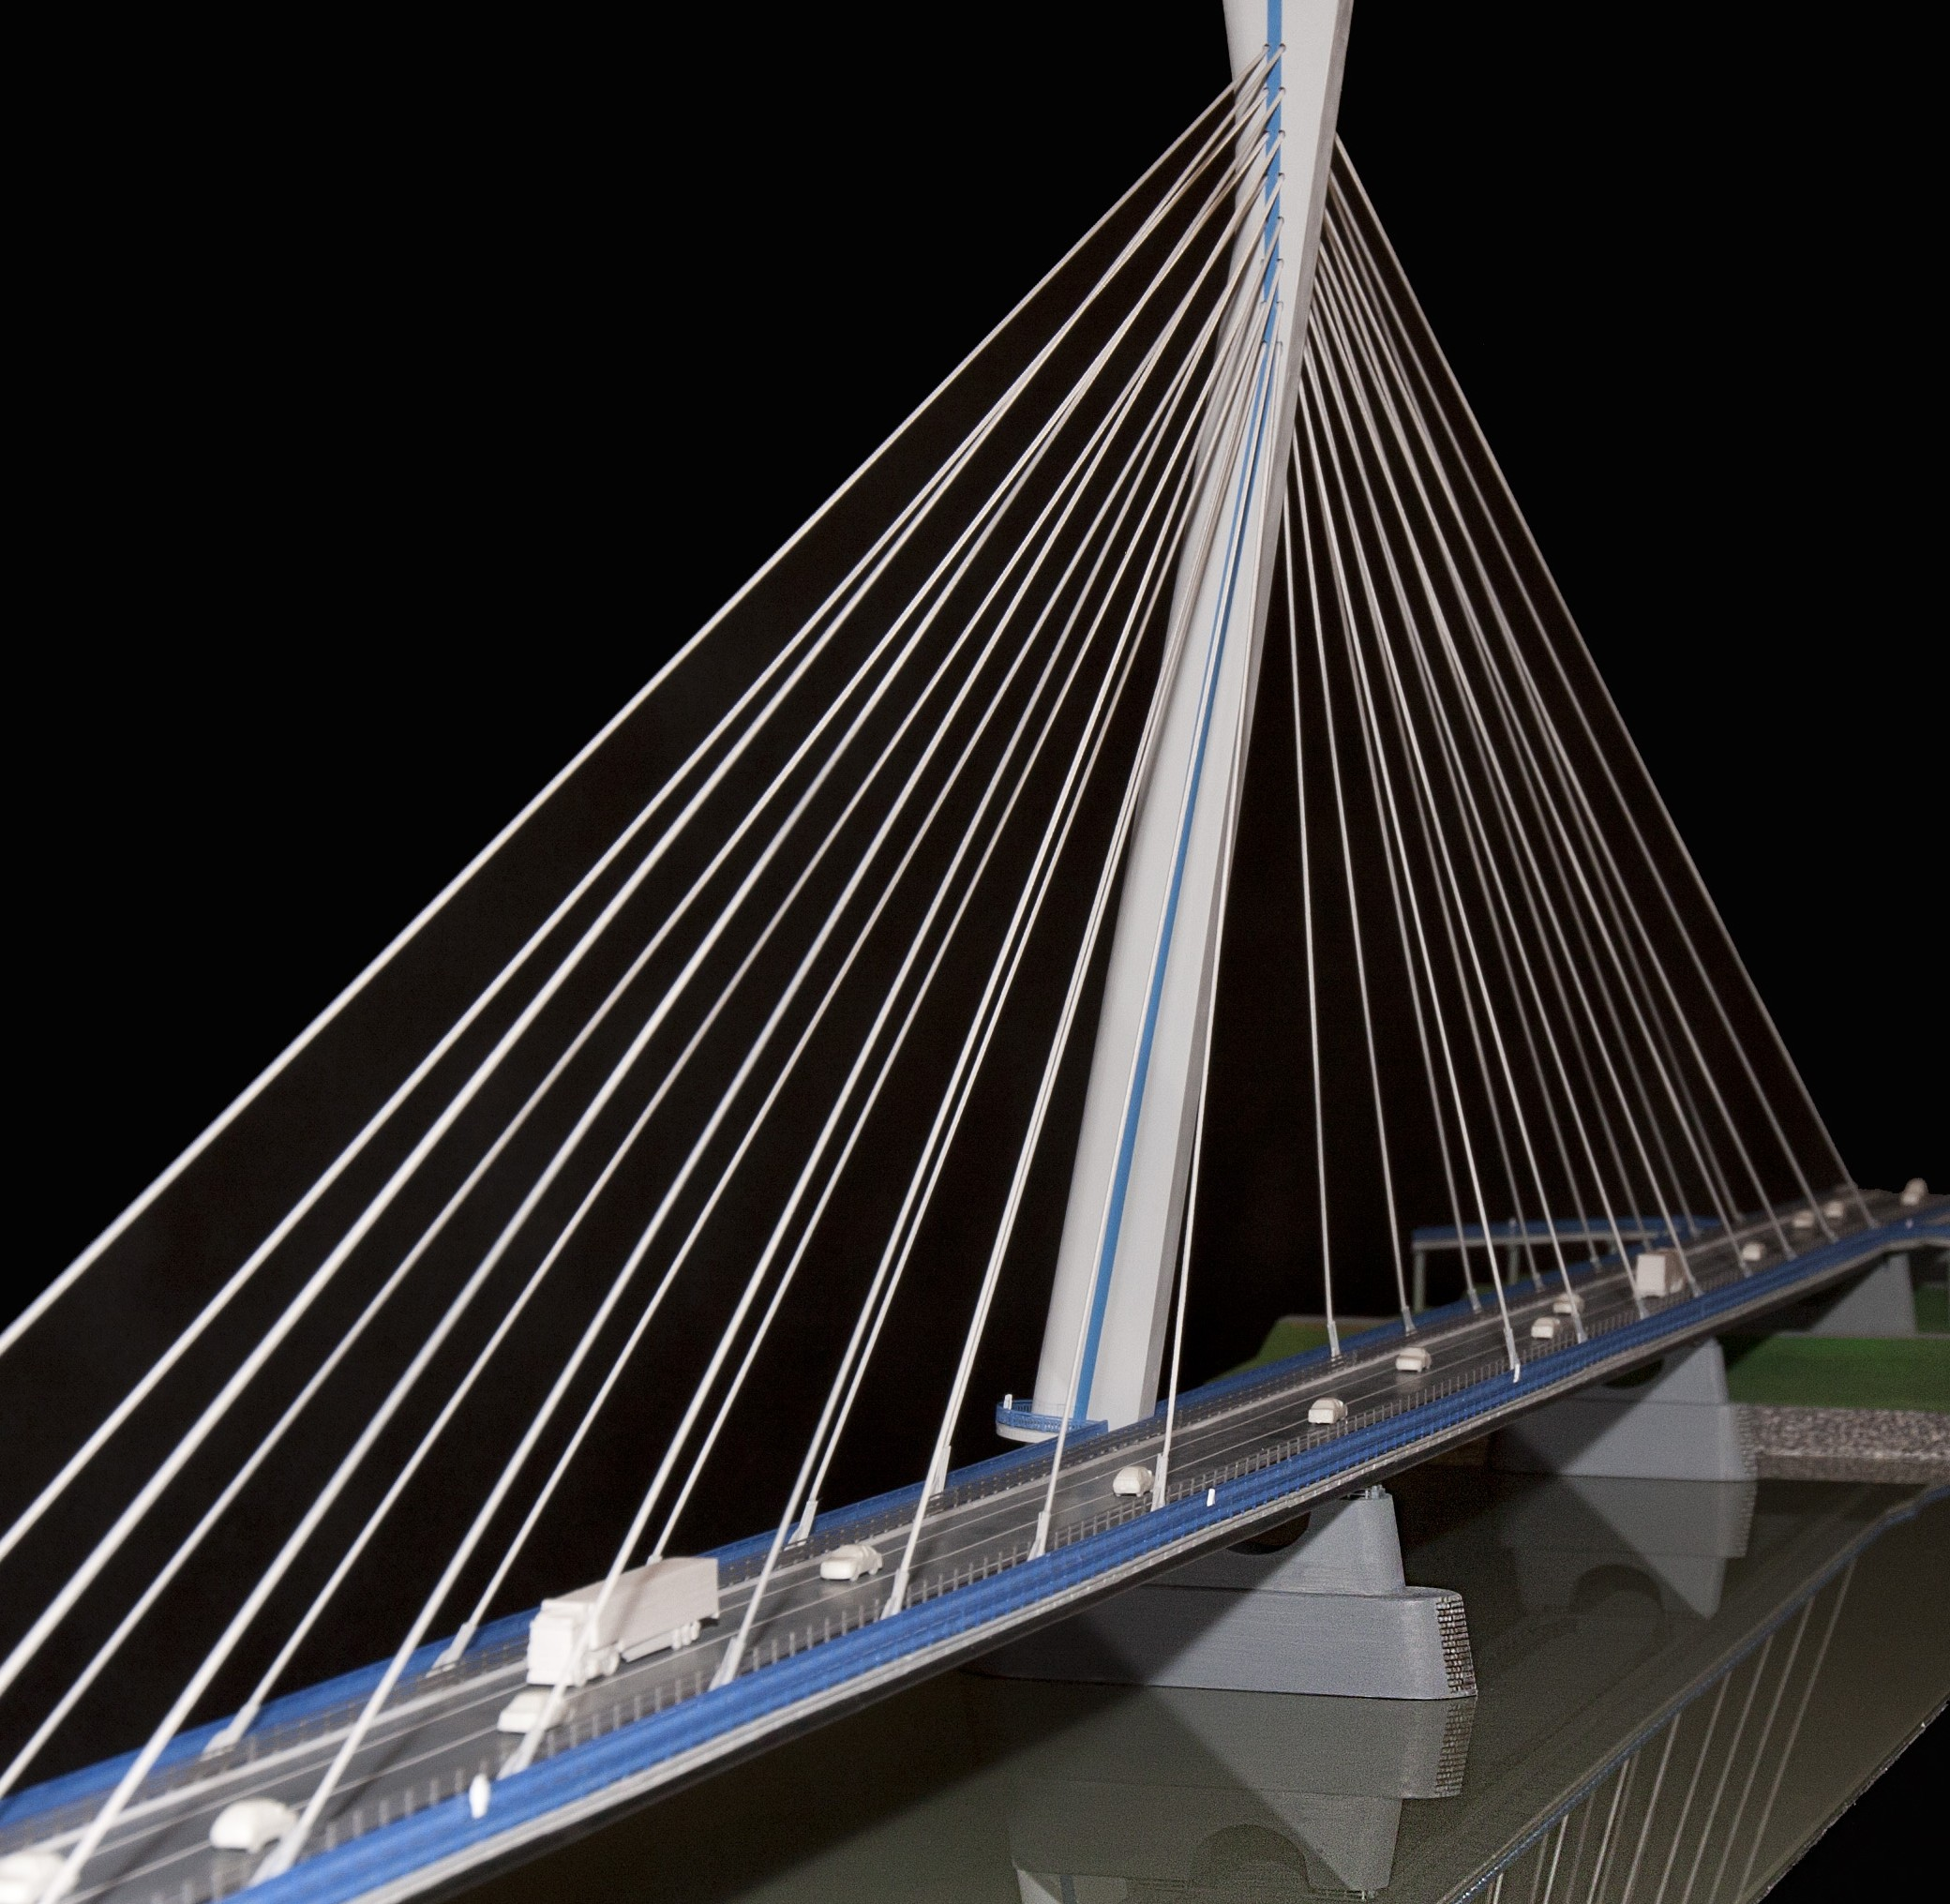 3D Printed Bridge on the Danube Metaphorically Unites Slovakia and Hungary